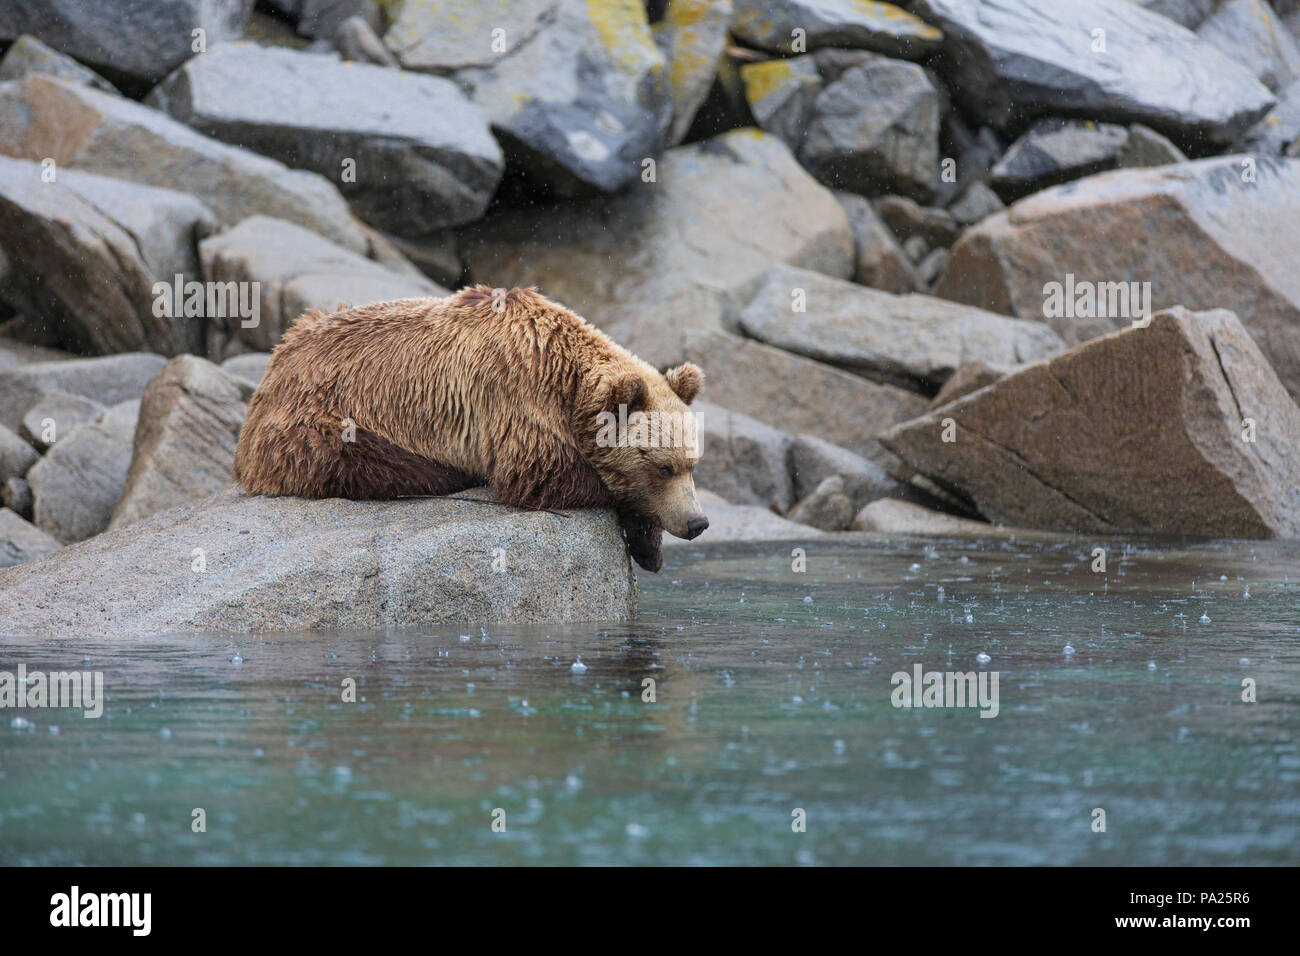 One Kamchatka brown bear (Ursus arctos beringianus) on the coastline of Eastern Russia - Stock Image